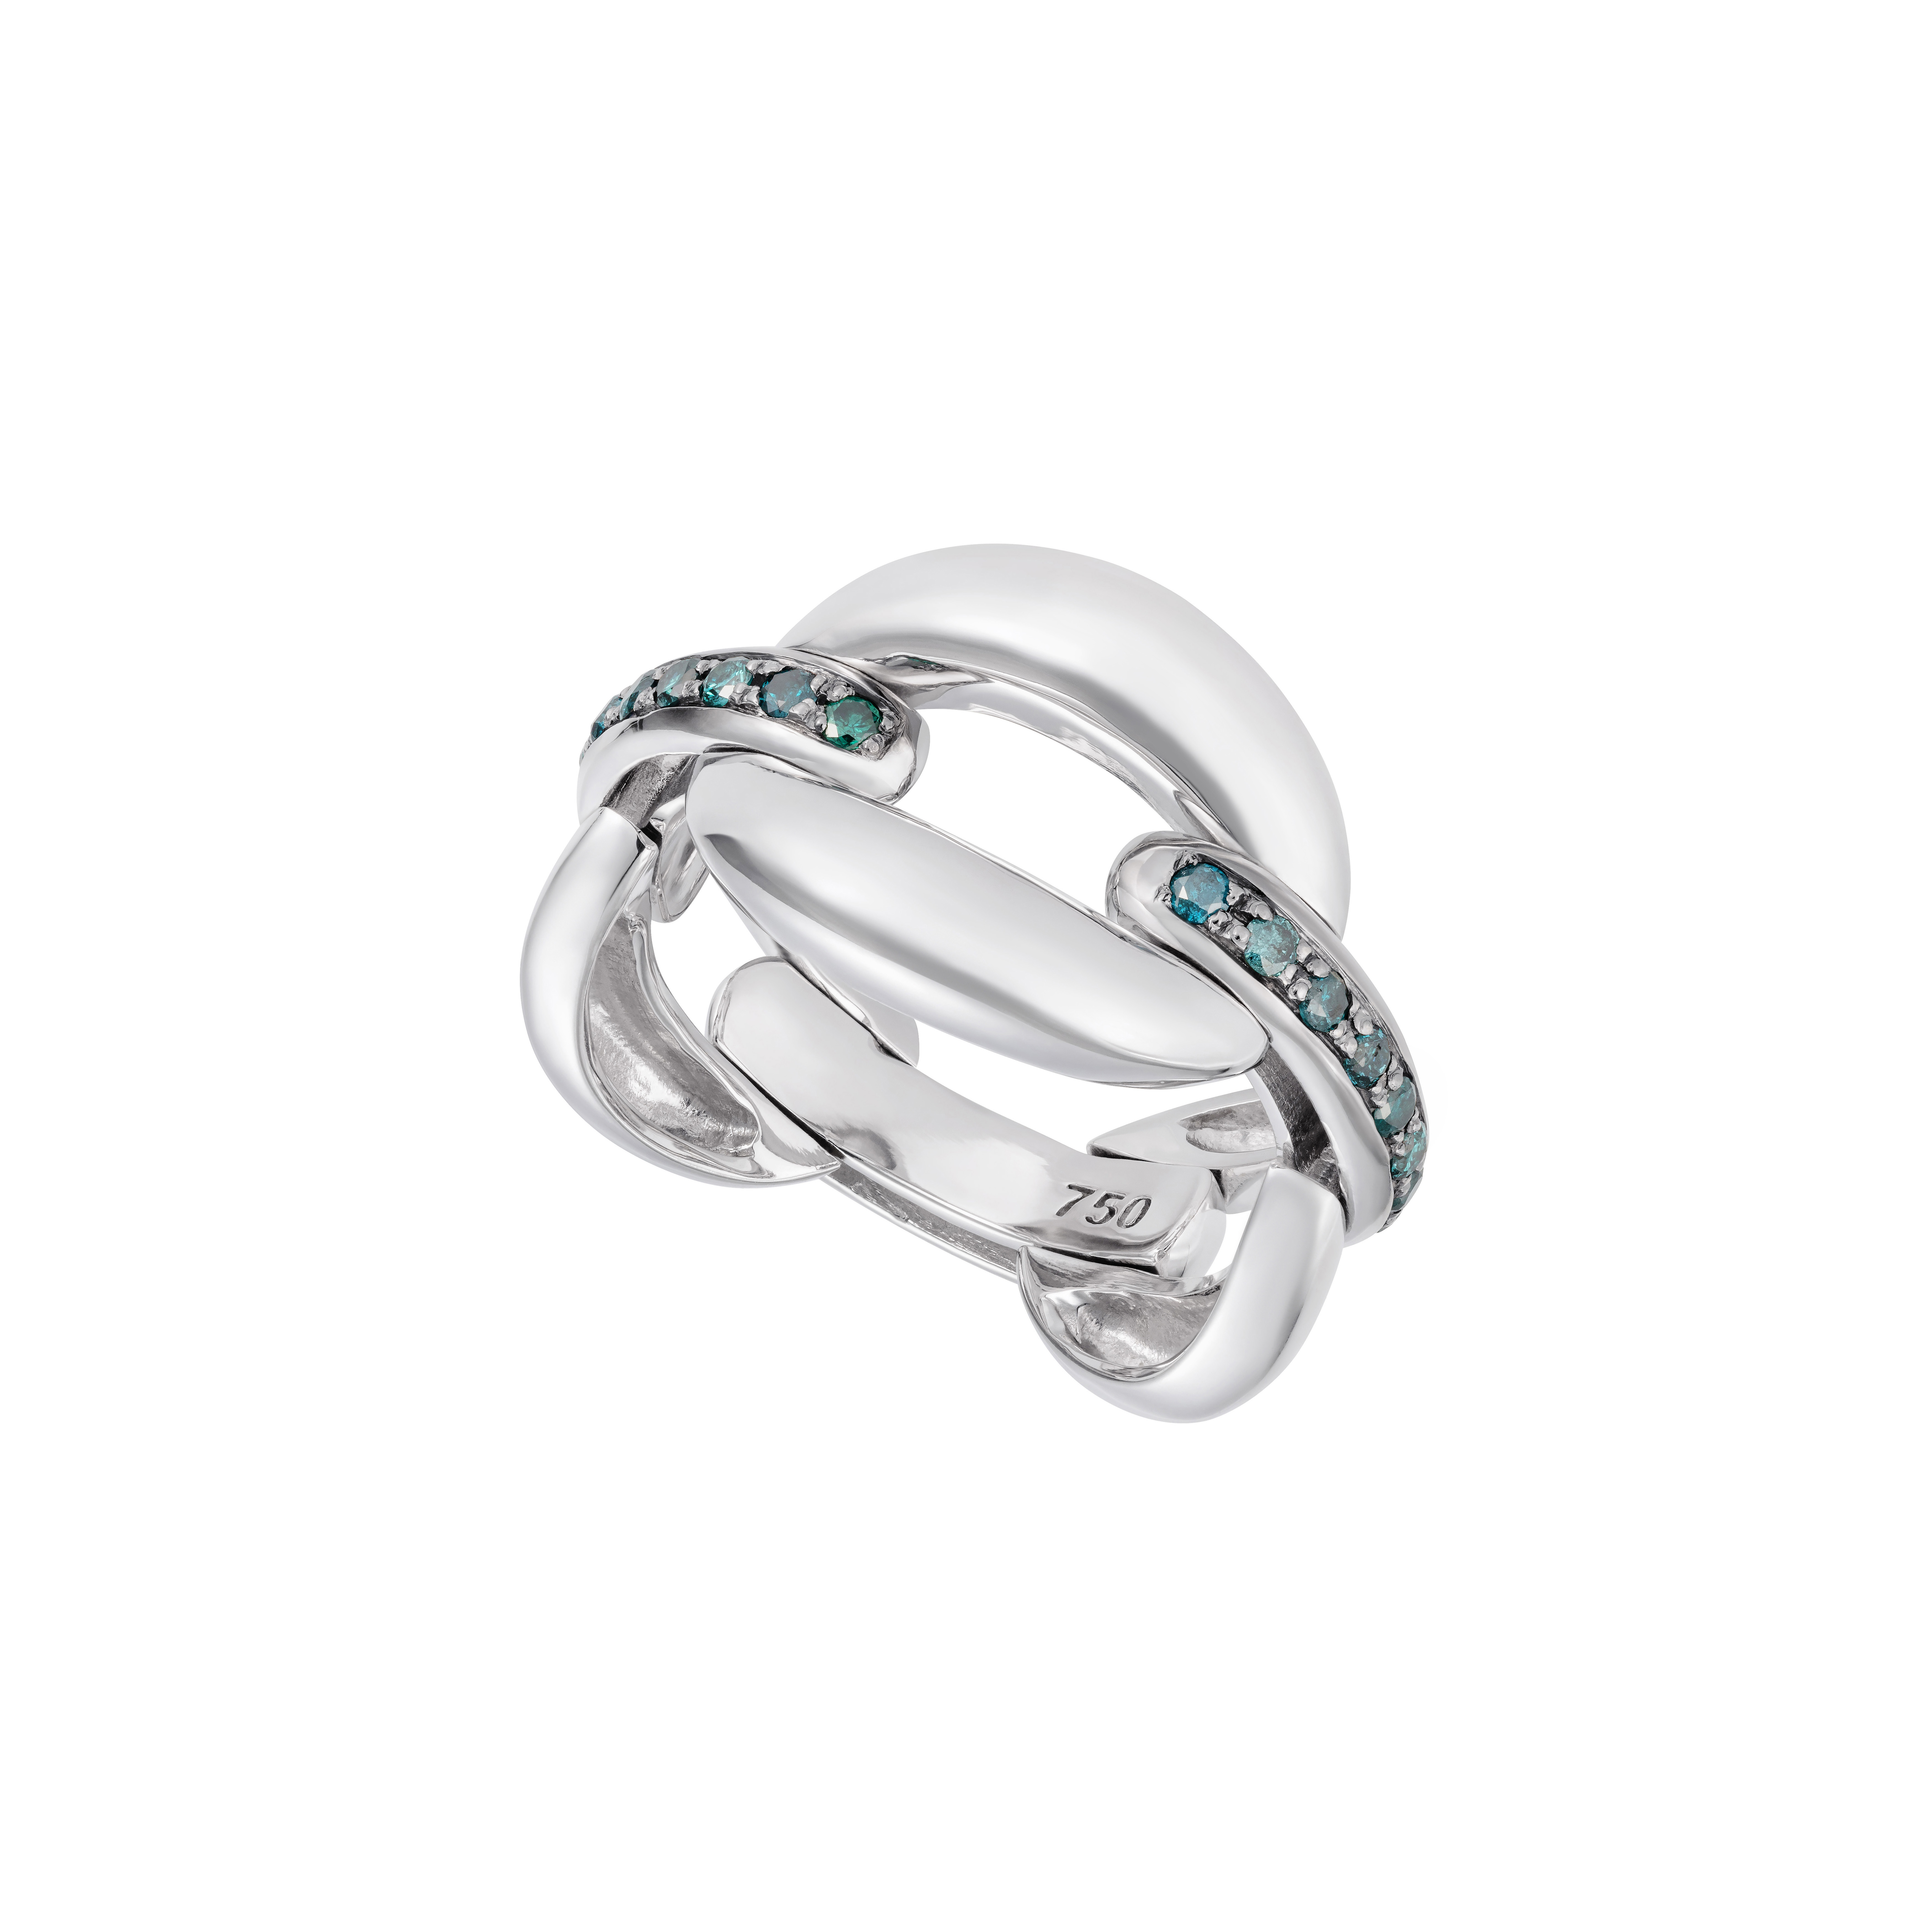 Catena Ring by Nadine Aysoy on curated-crowd.com